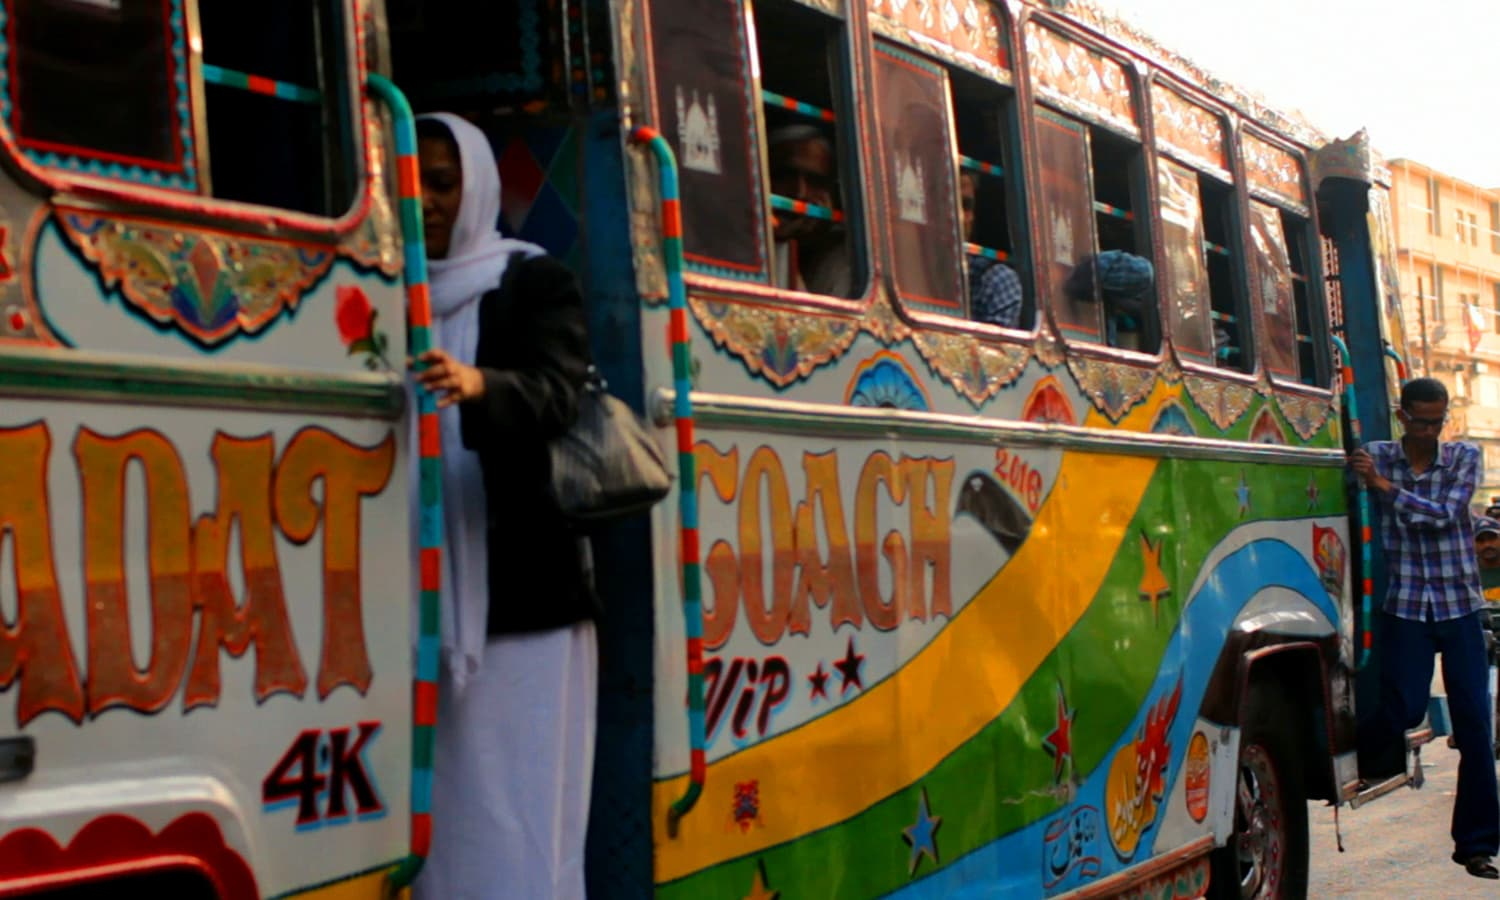 when will pakistani men stop harassing women on buses? - pakistan